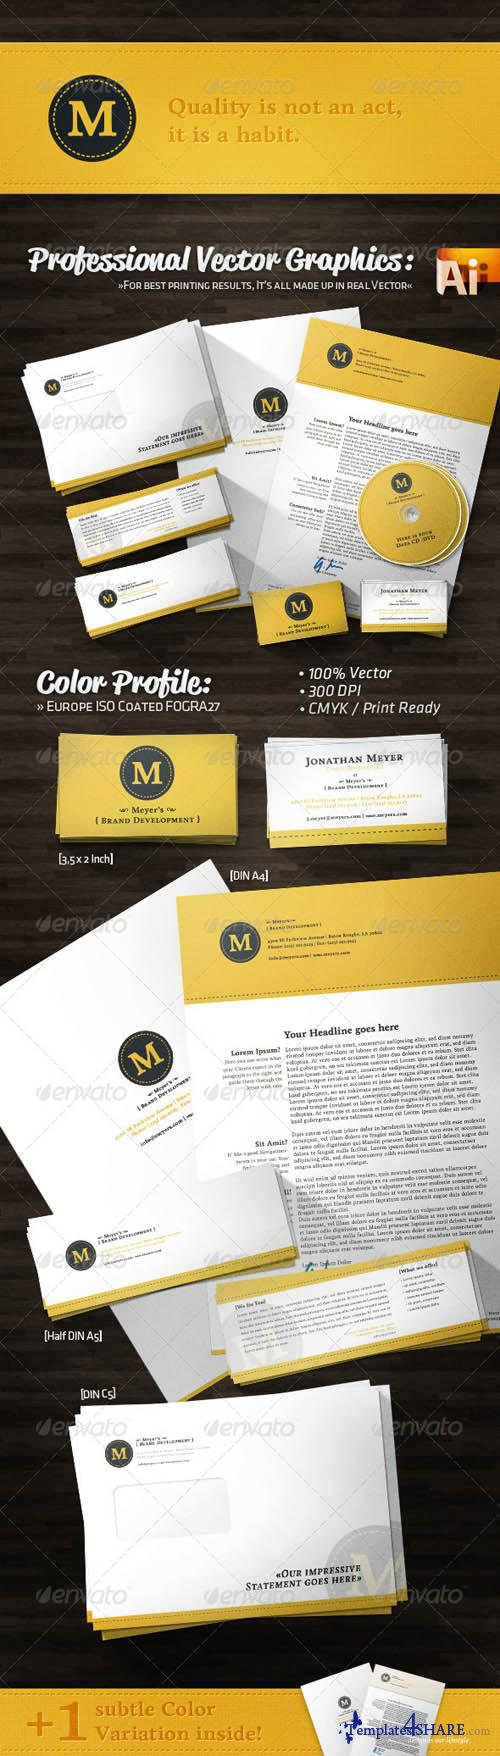 GraphicRiver Creative Agency Corporate Identity Retro Style - REUPLOAD